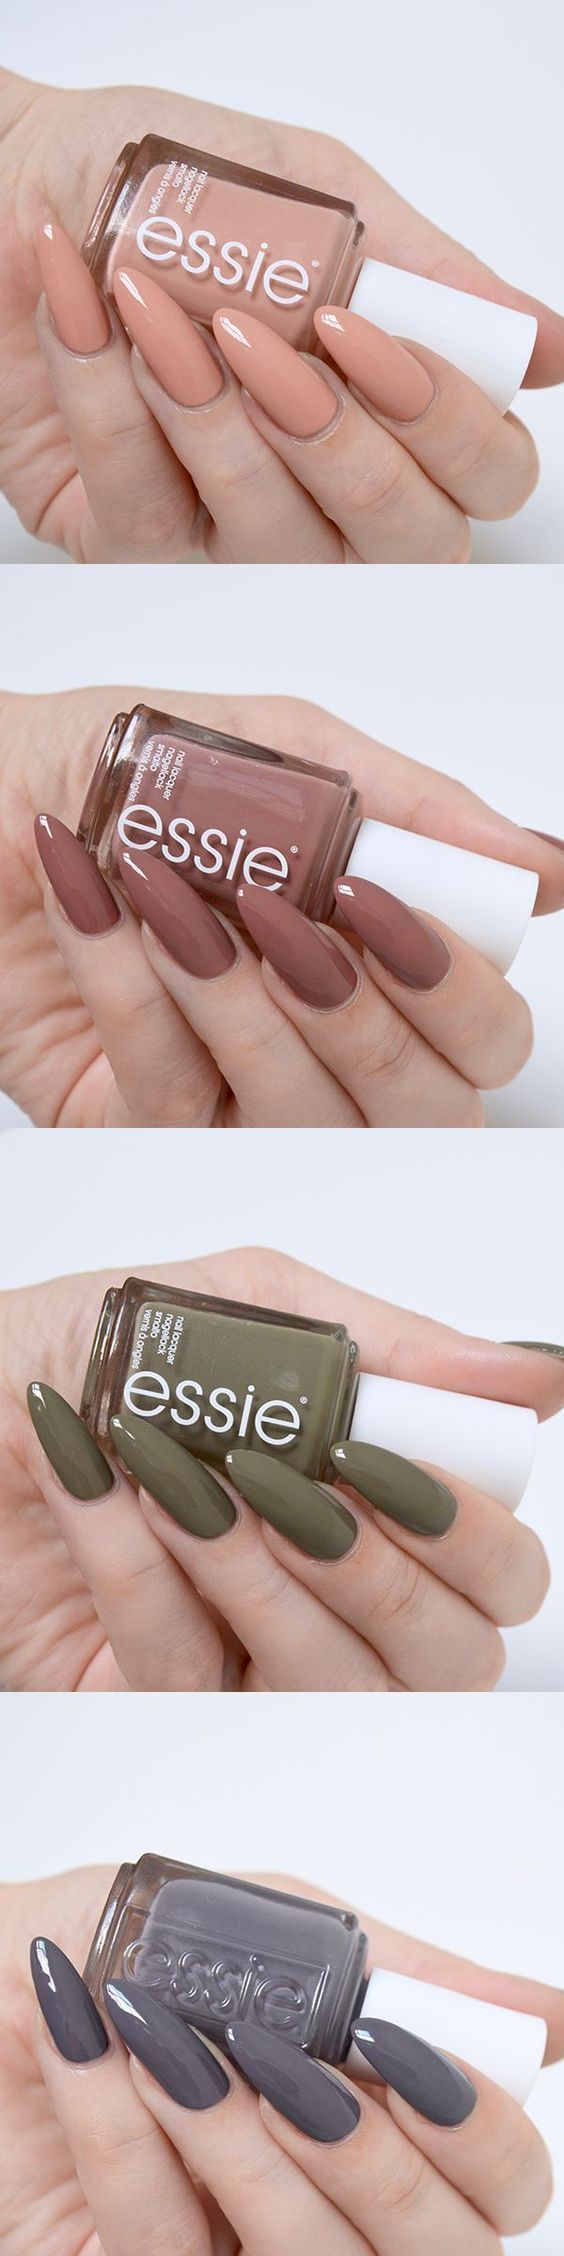 Essie wild nudes collection jusquuau bout des ongles